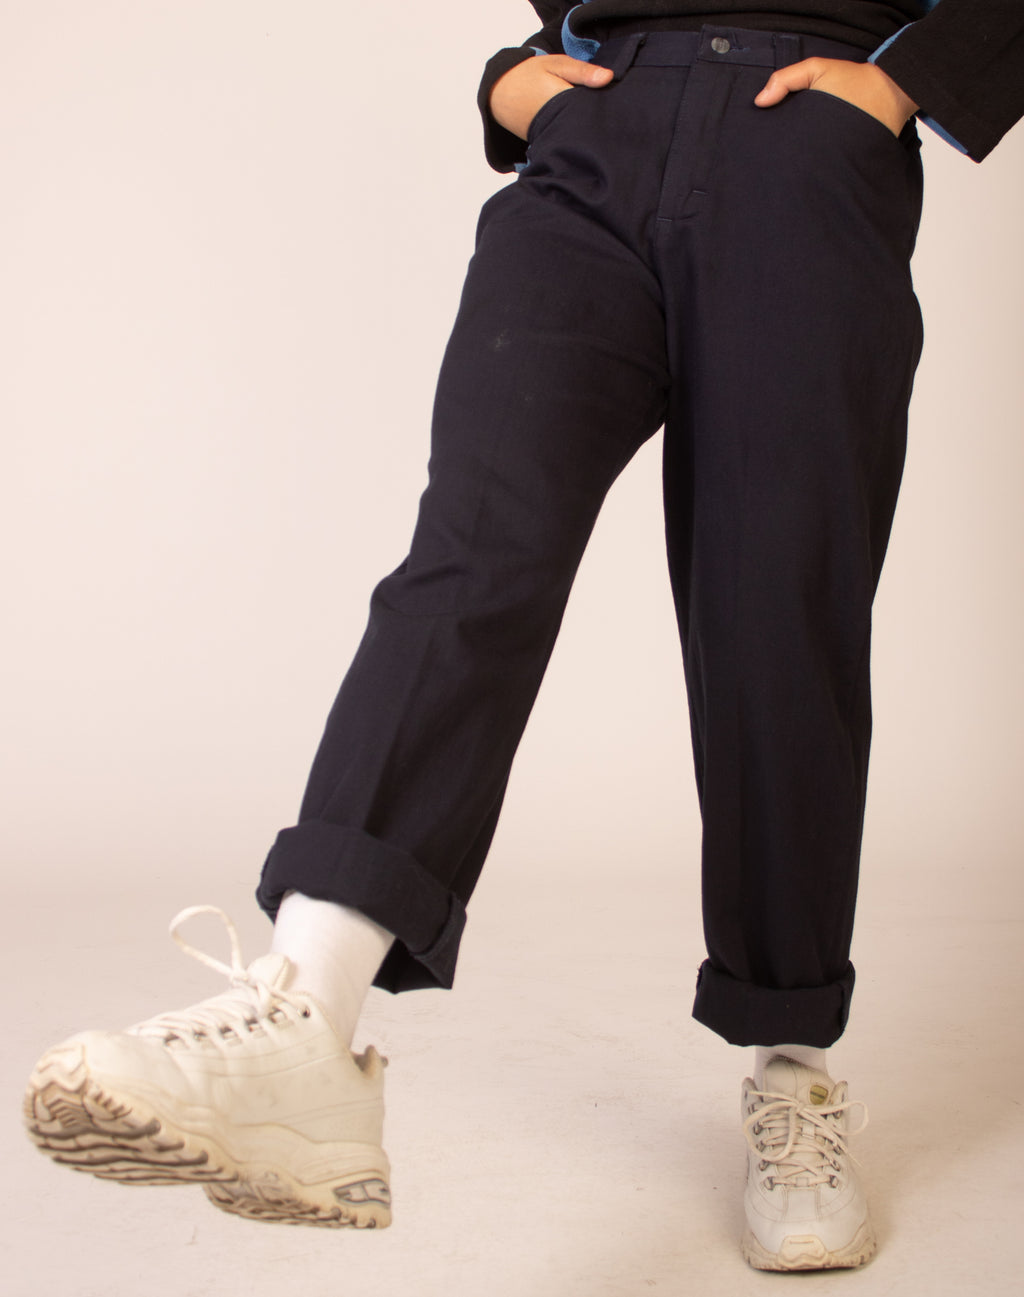 LEE NAVY BLUE TROUSERS